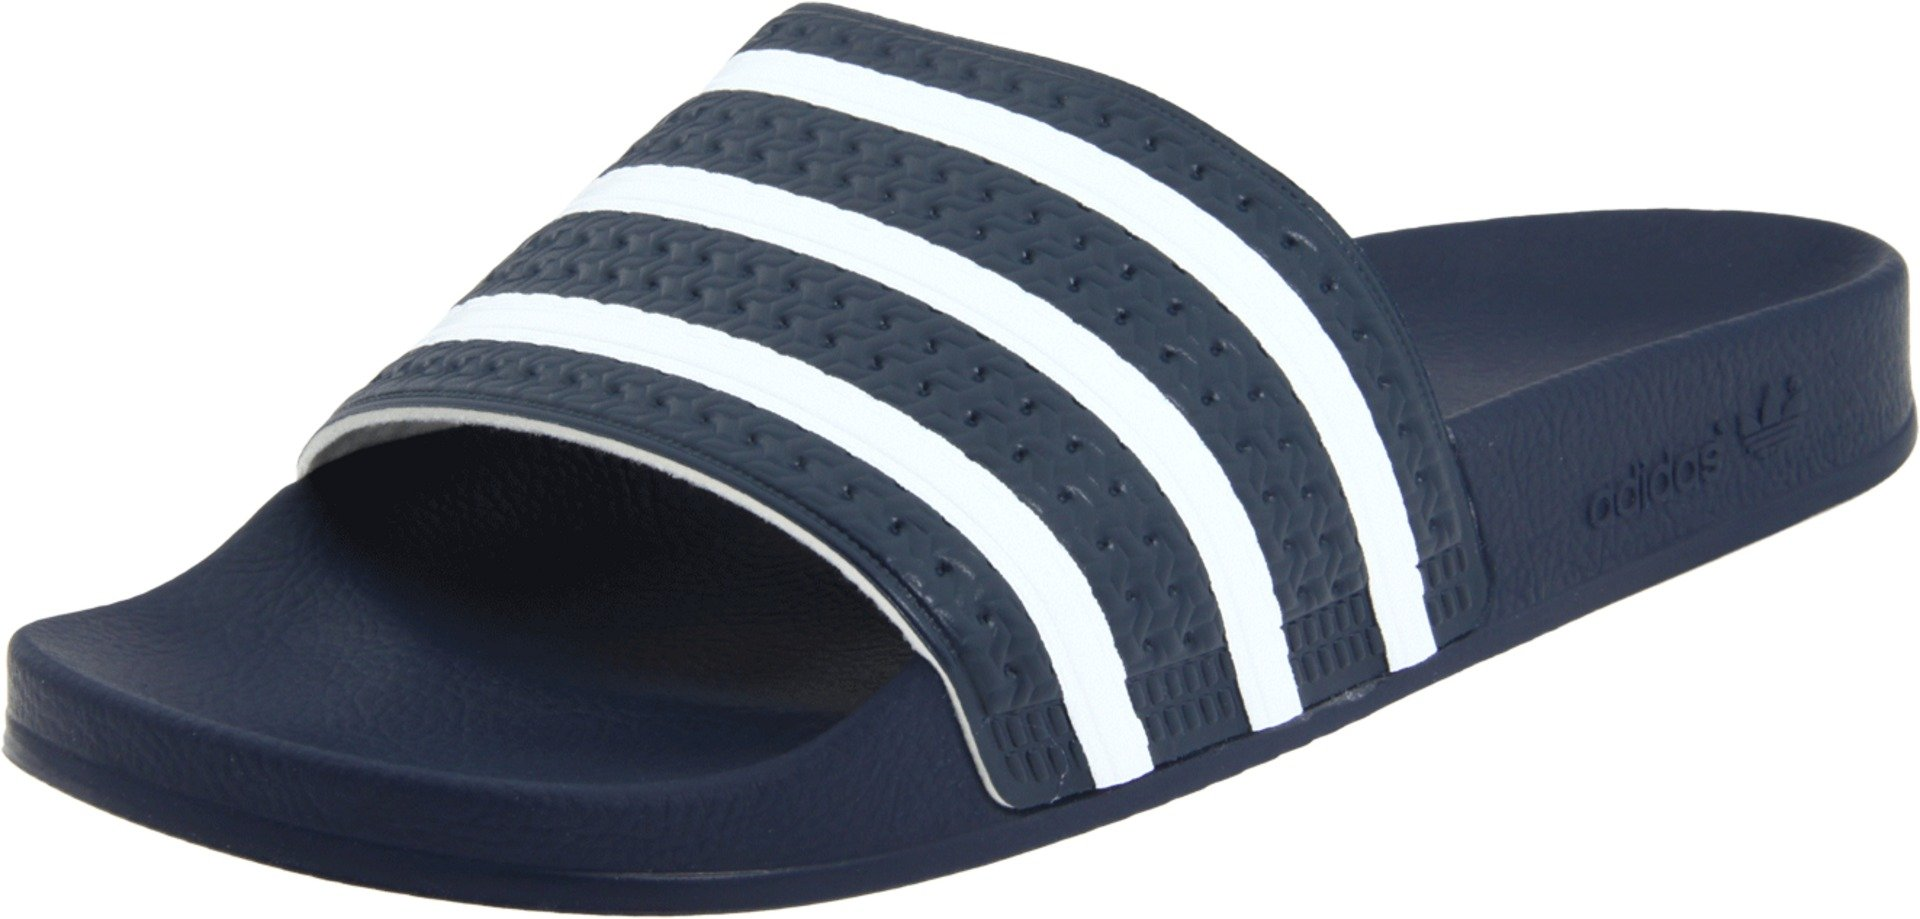 adidas Originals Men's Adilette Slide Sandal, Blue/White Blue,4 M